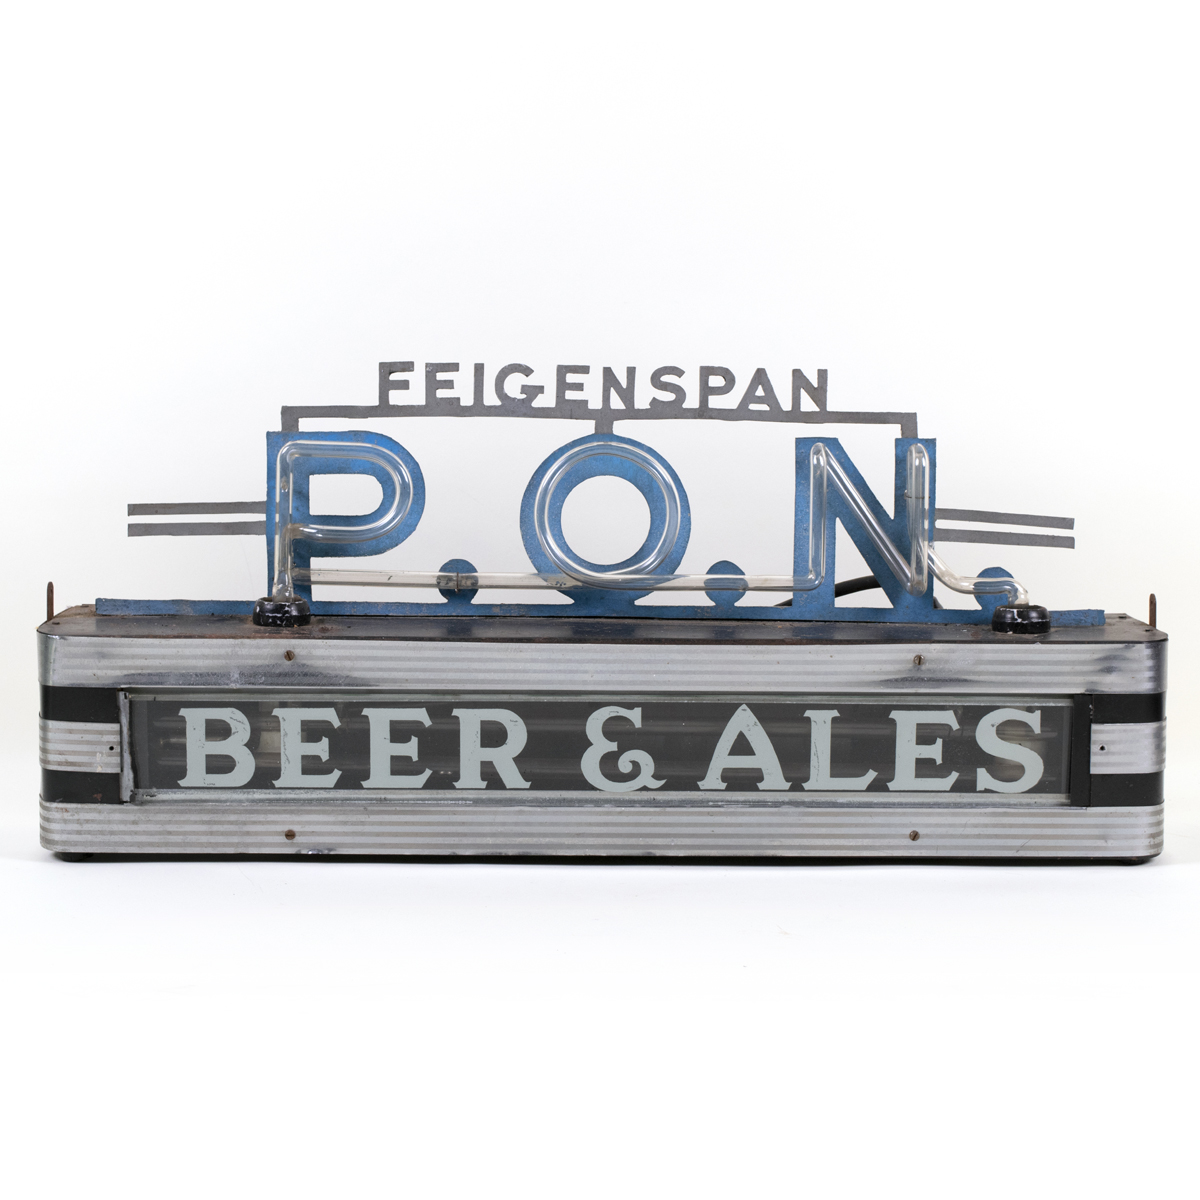 Feigenspan P.O.N. 1930s Neon Sign